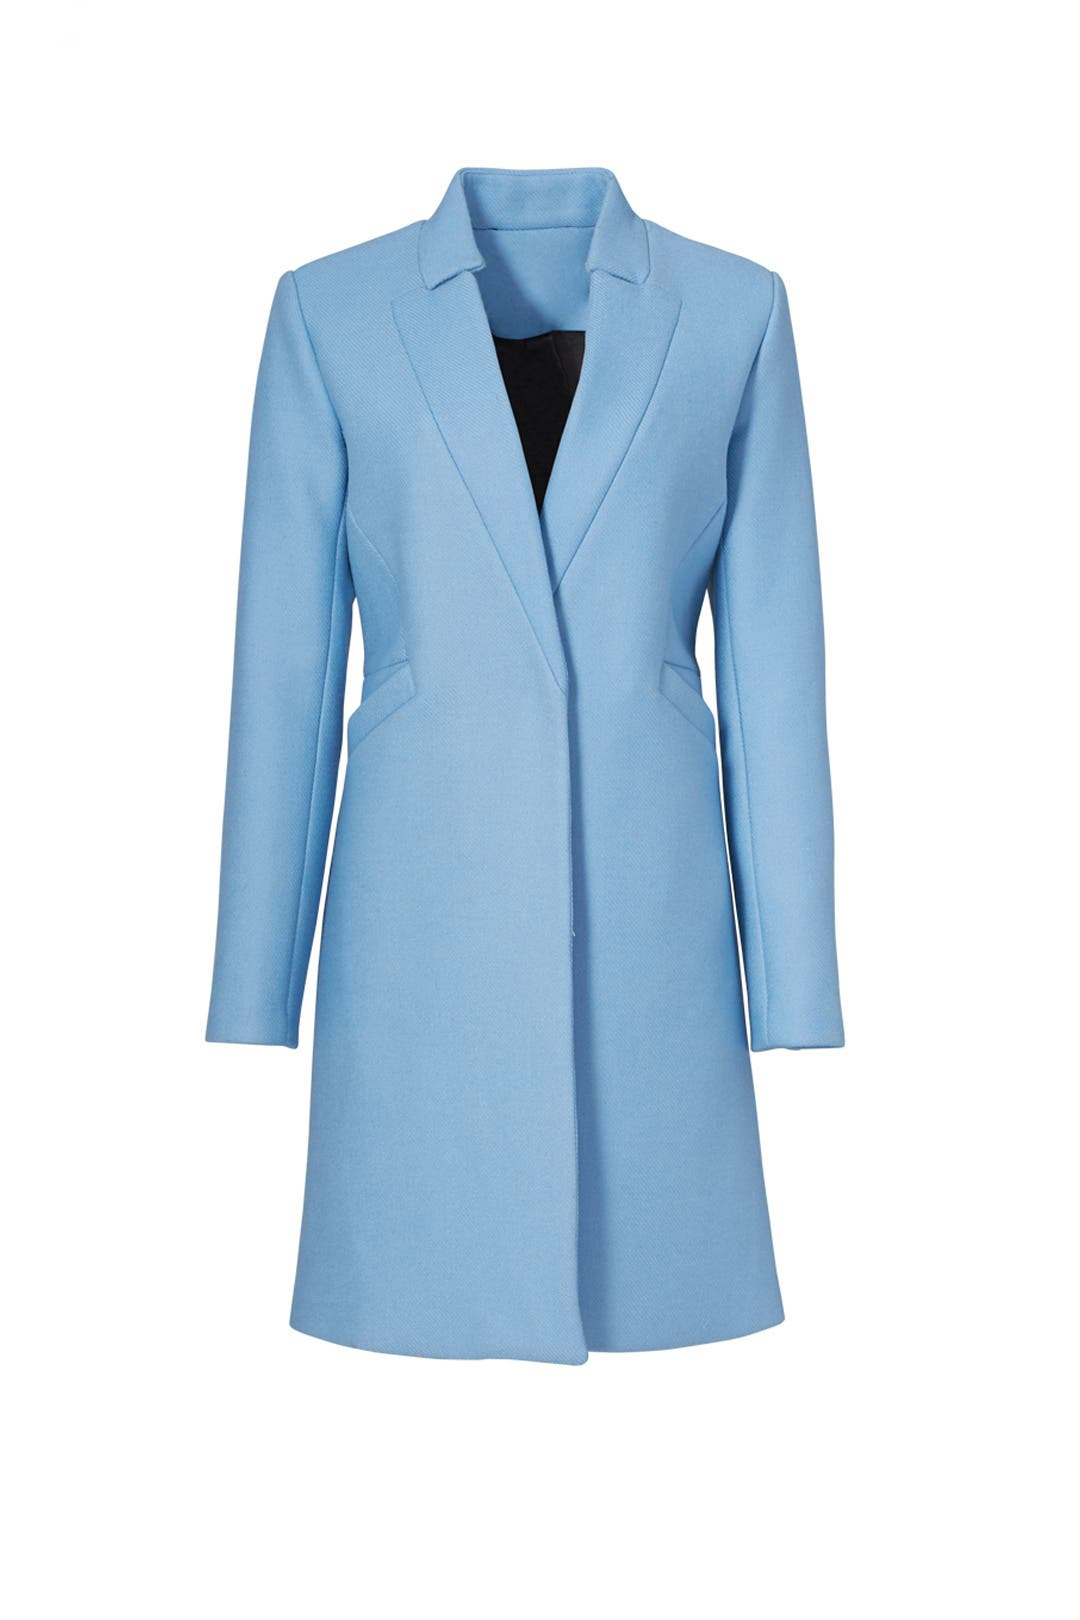 Ice Blue Doubleface Wool Slim Coat by Milly